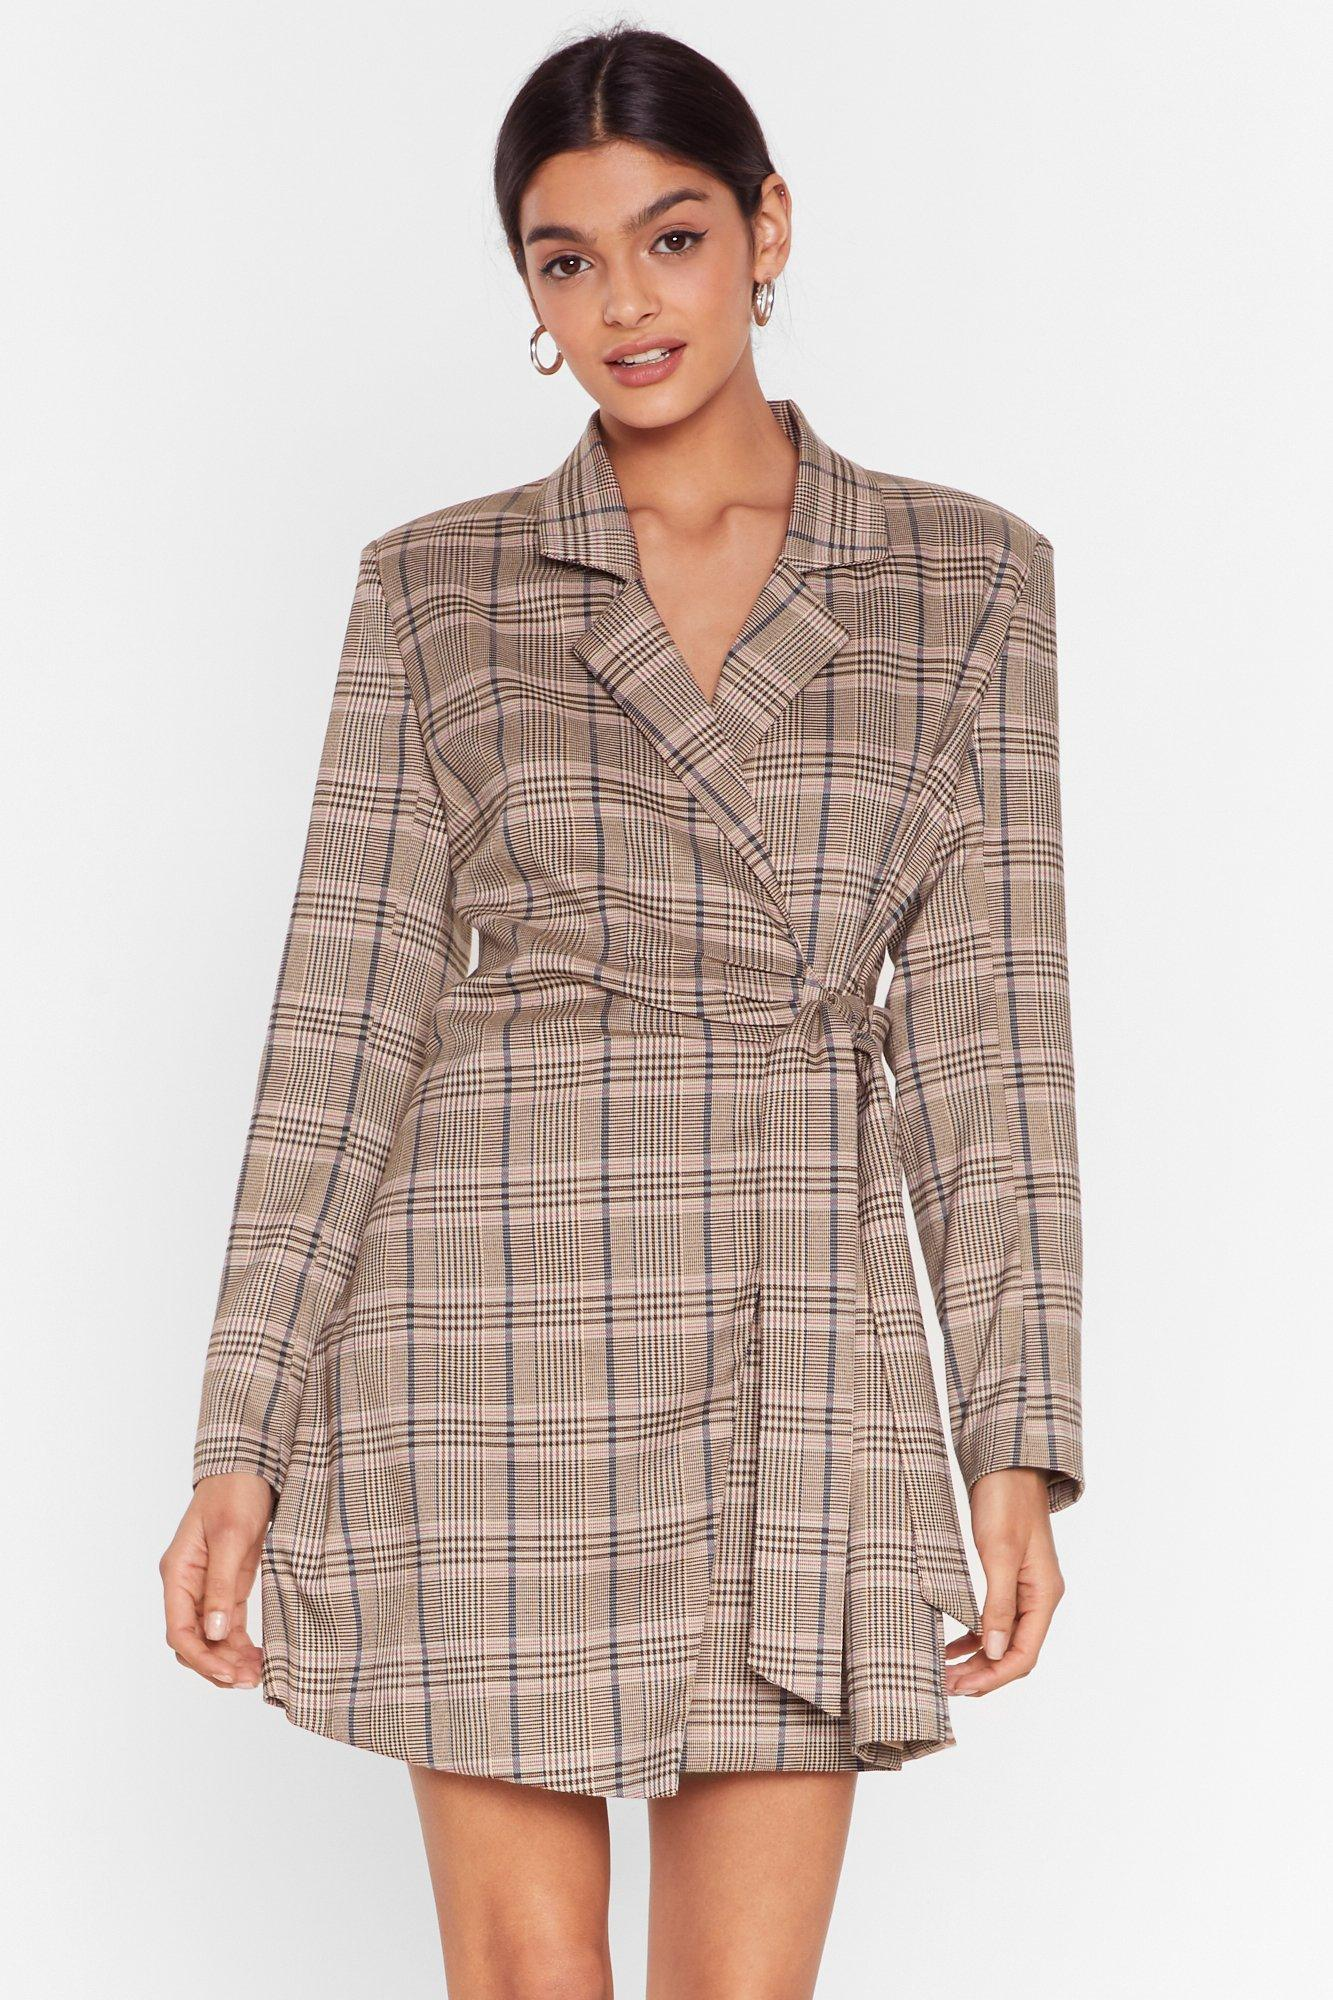 Image of Check Out the View Tie Blazer Dress